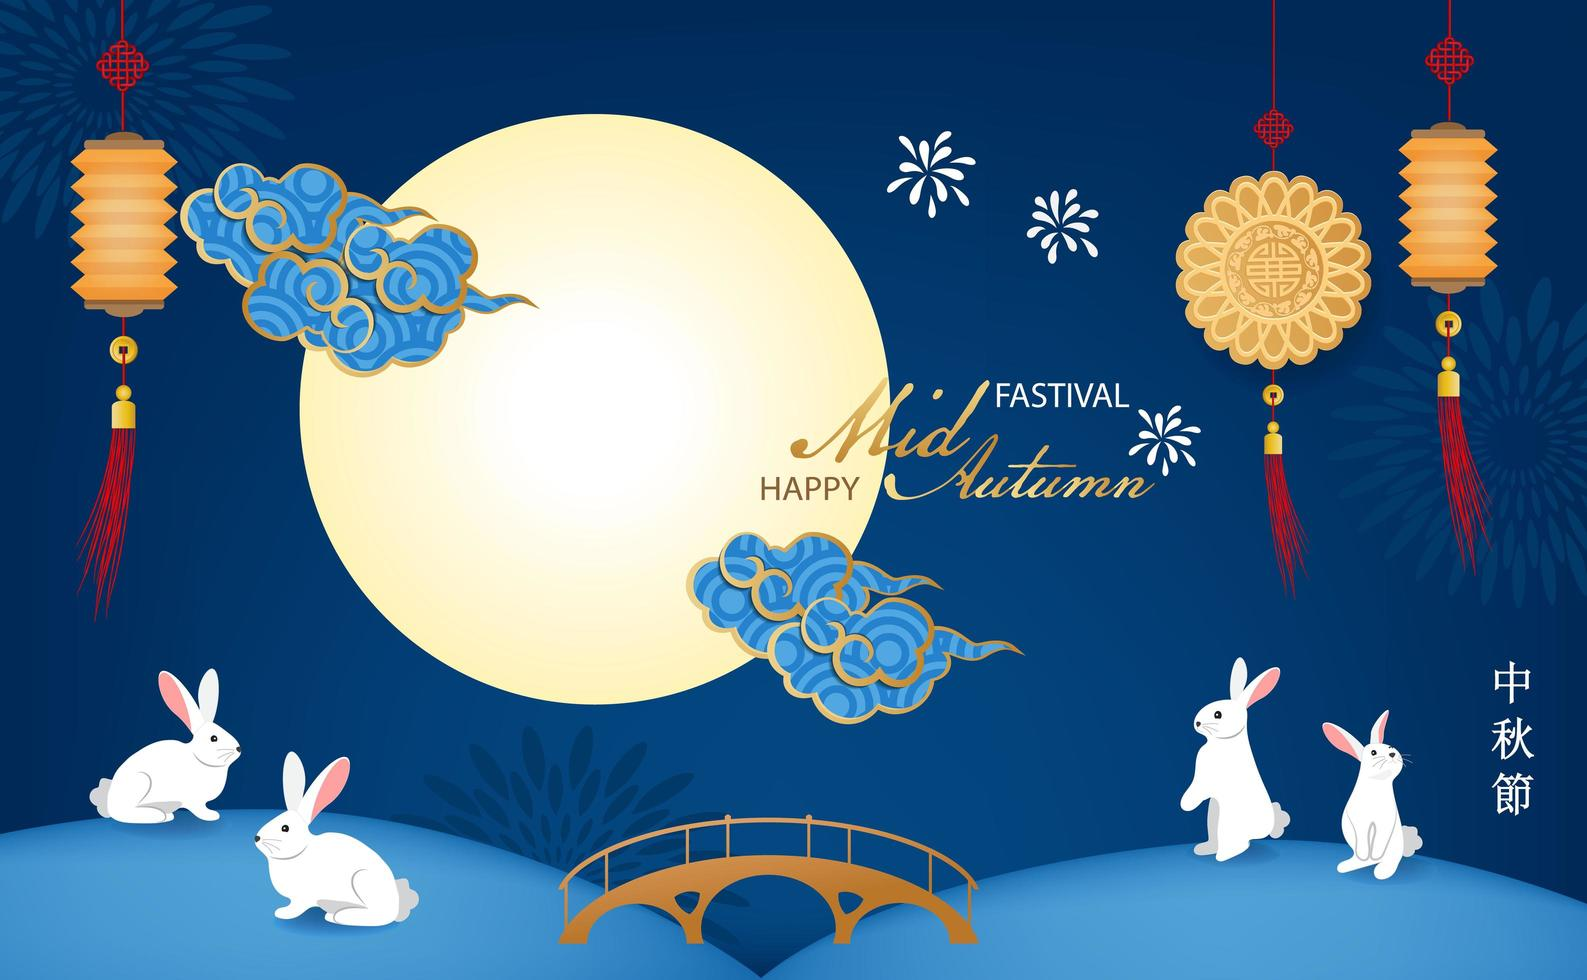 Mid-Autumn Festival design with mooncake and lantern 1249503 Vector Art at  Vecteezy